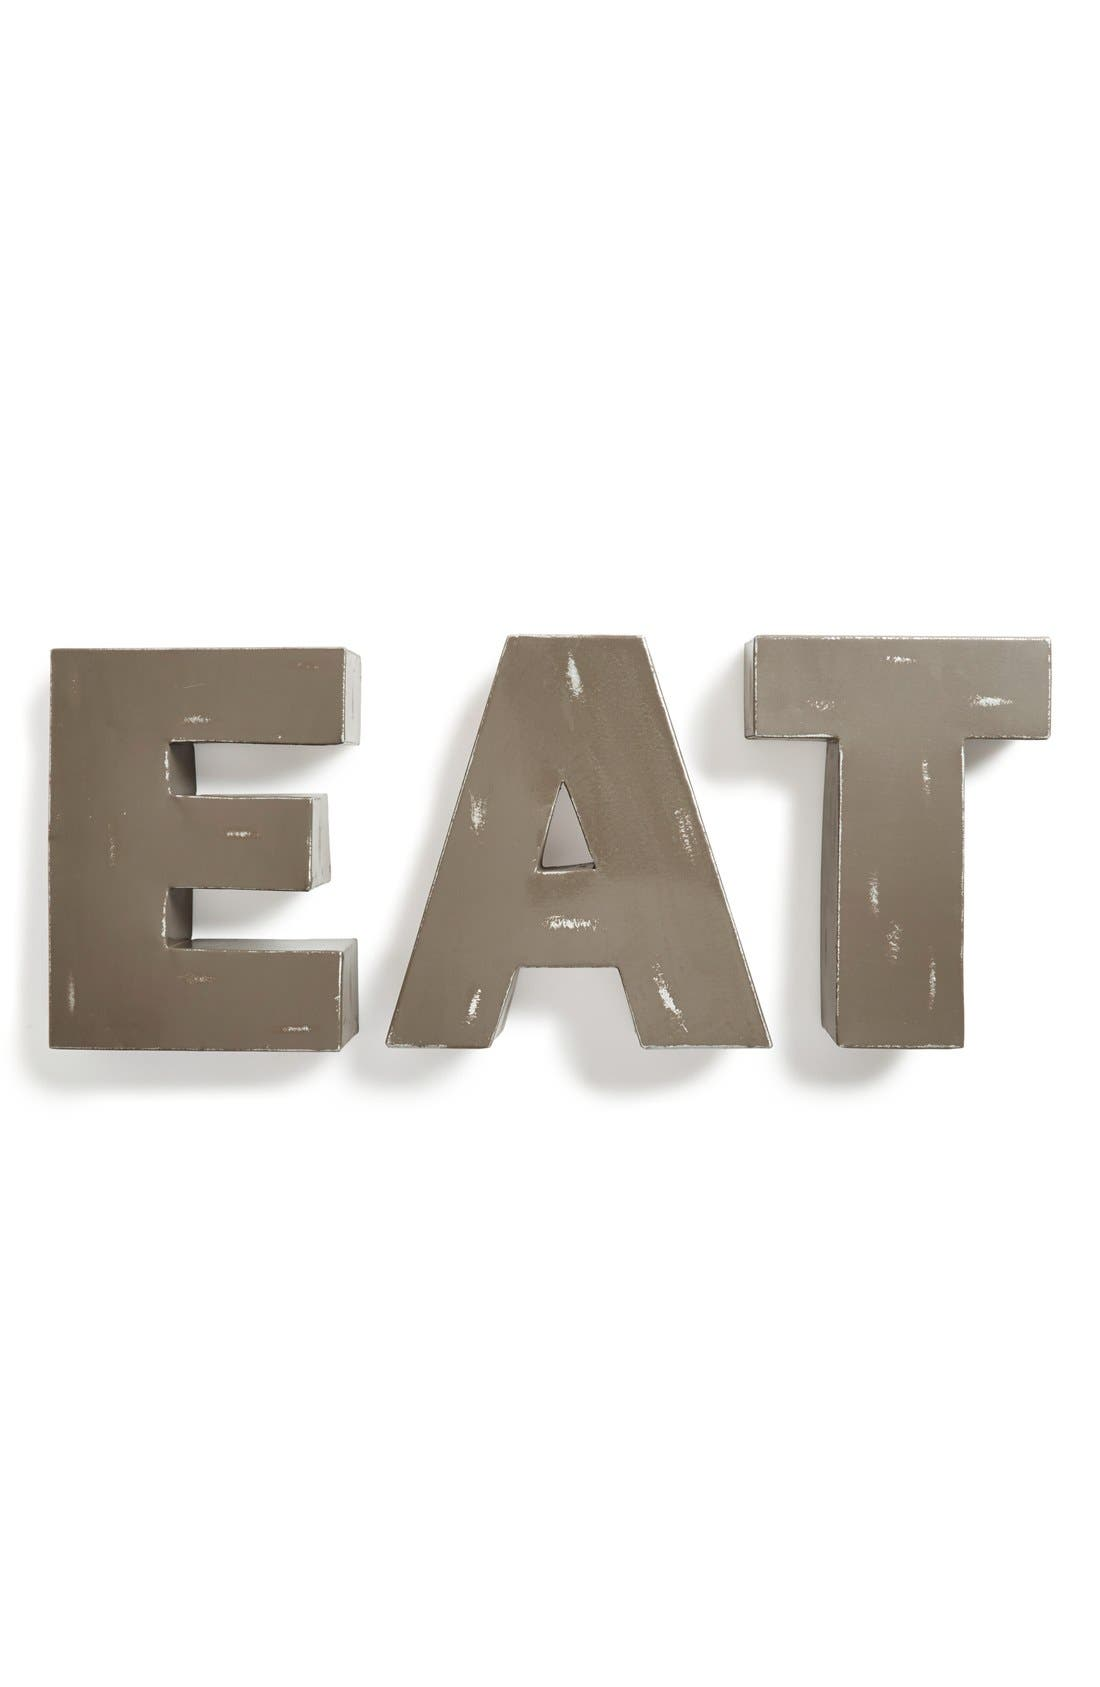 Alternate Image 1 Selected - Foreside 'Eat' Decorative Metal Letters